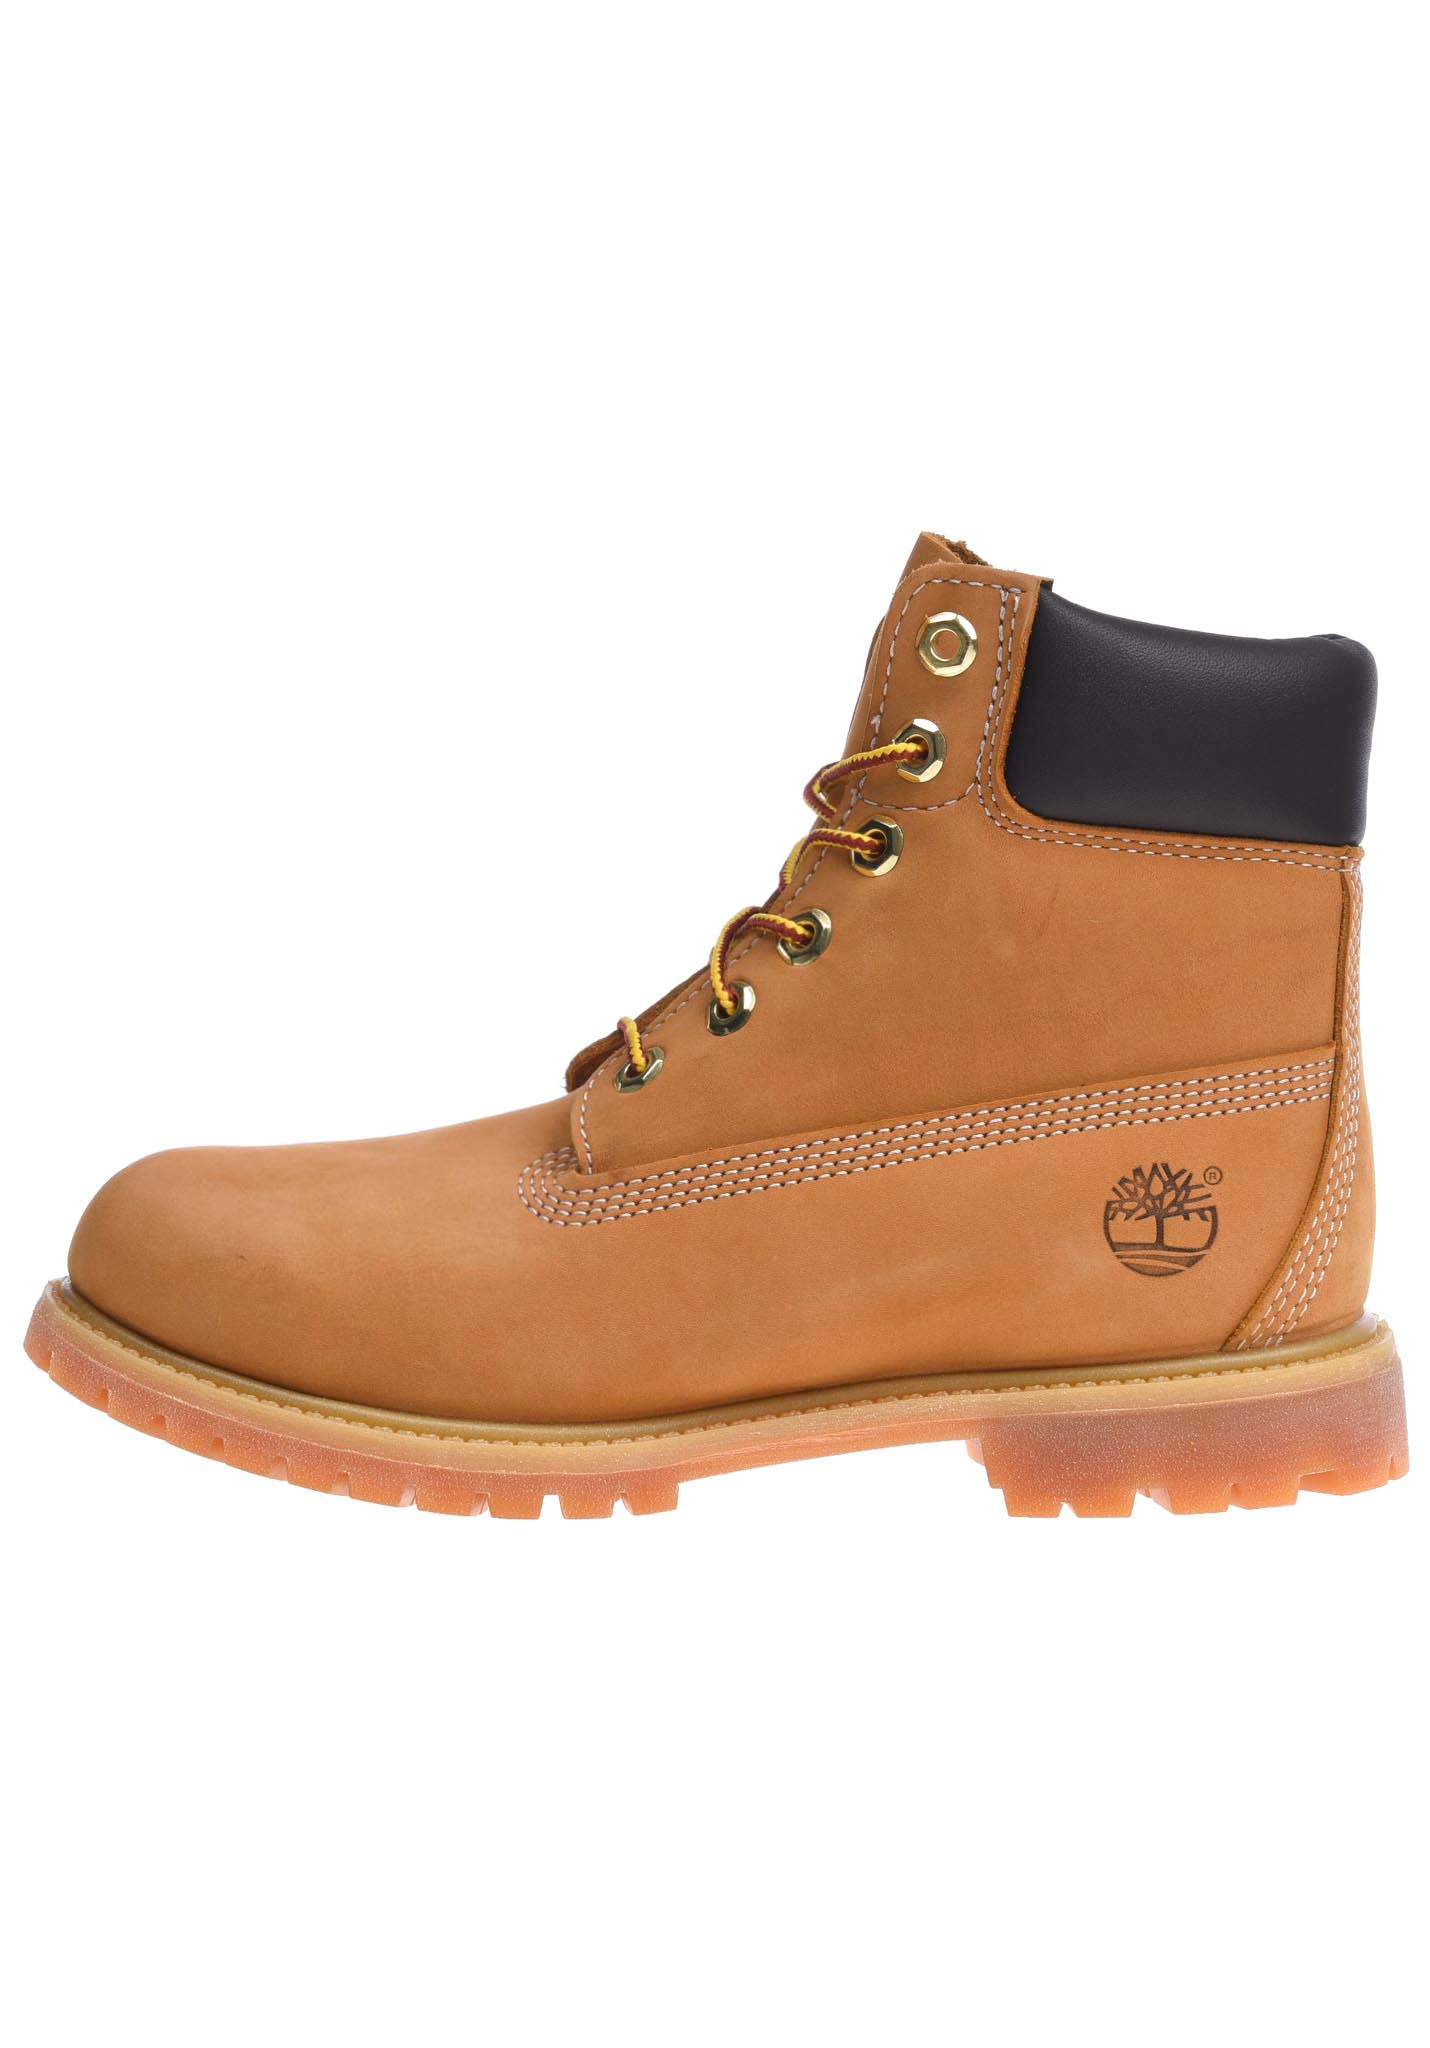 Timberland 6 inch Premium, Bottes Femme